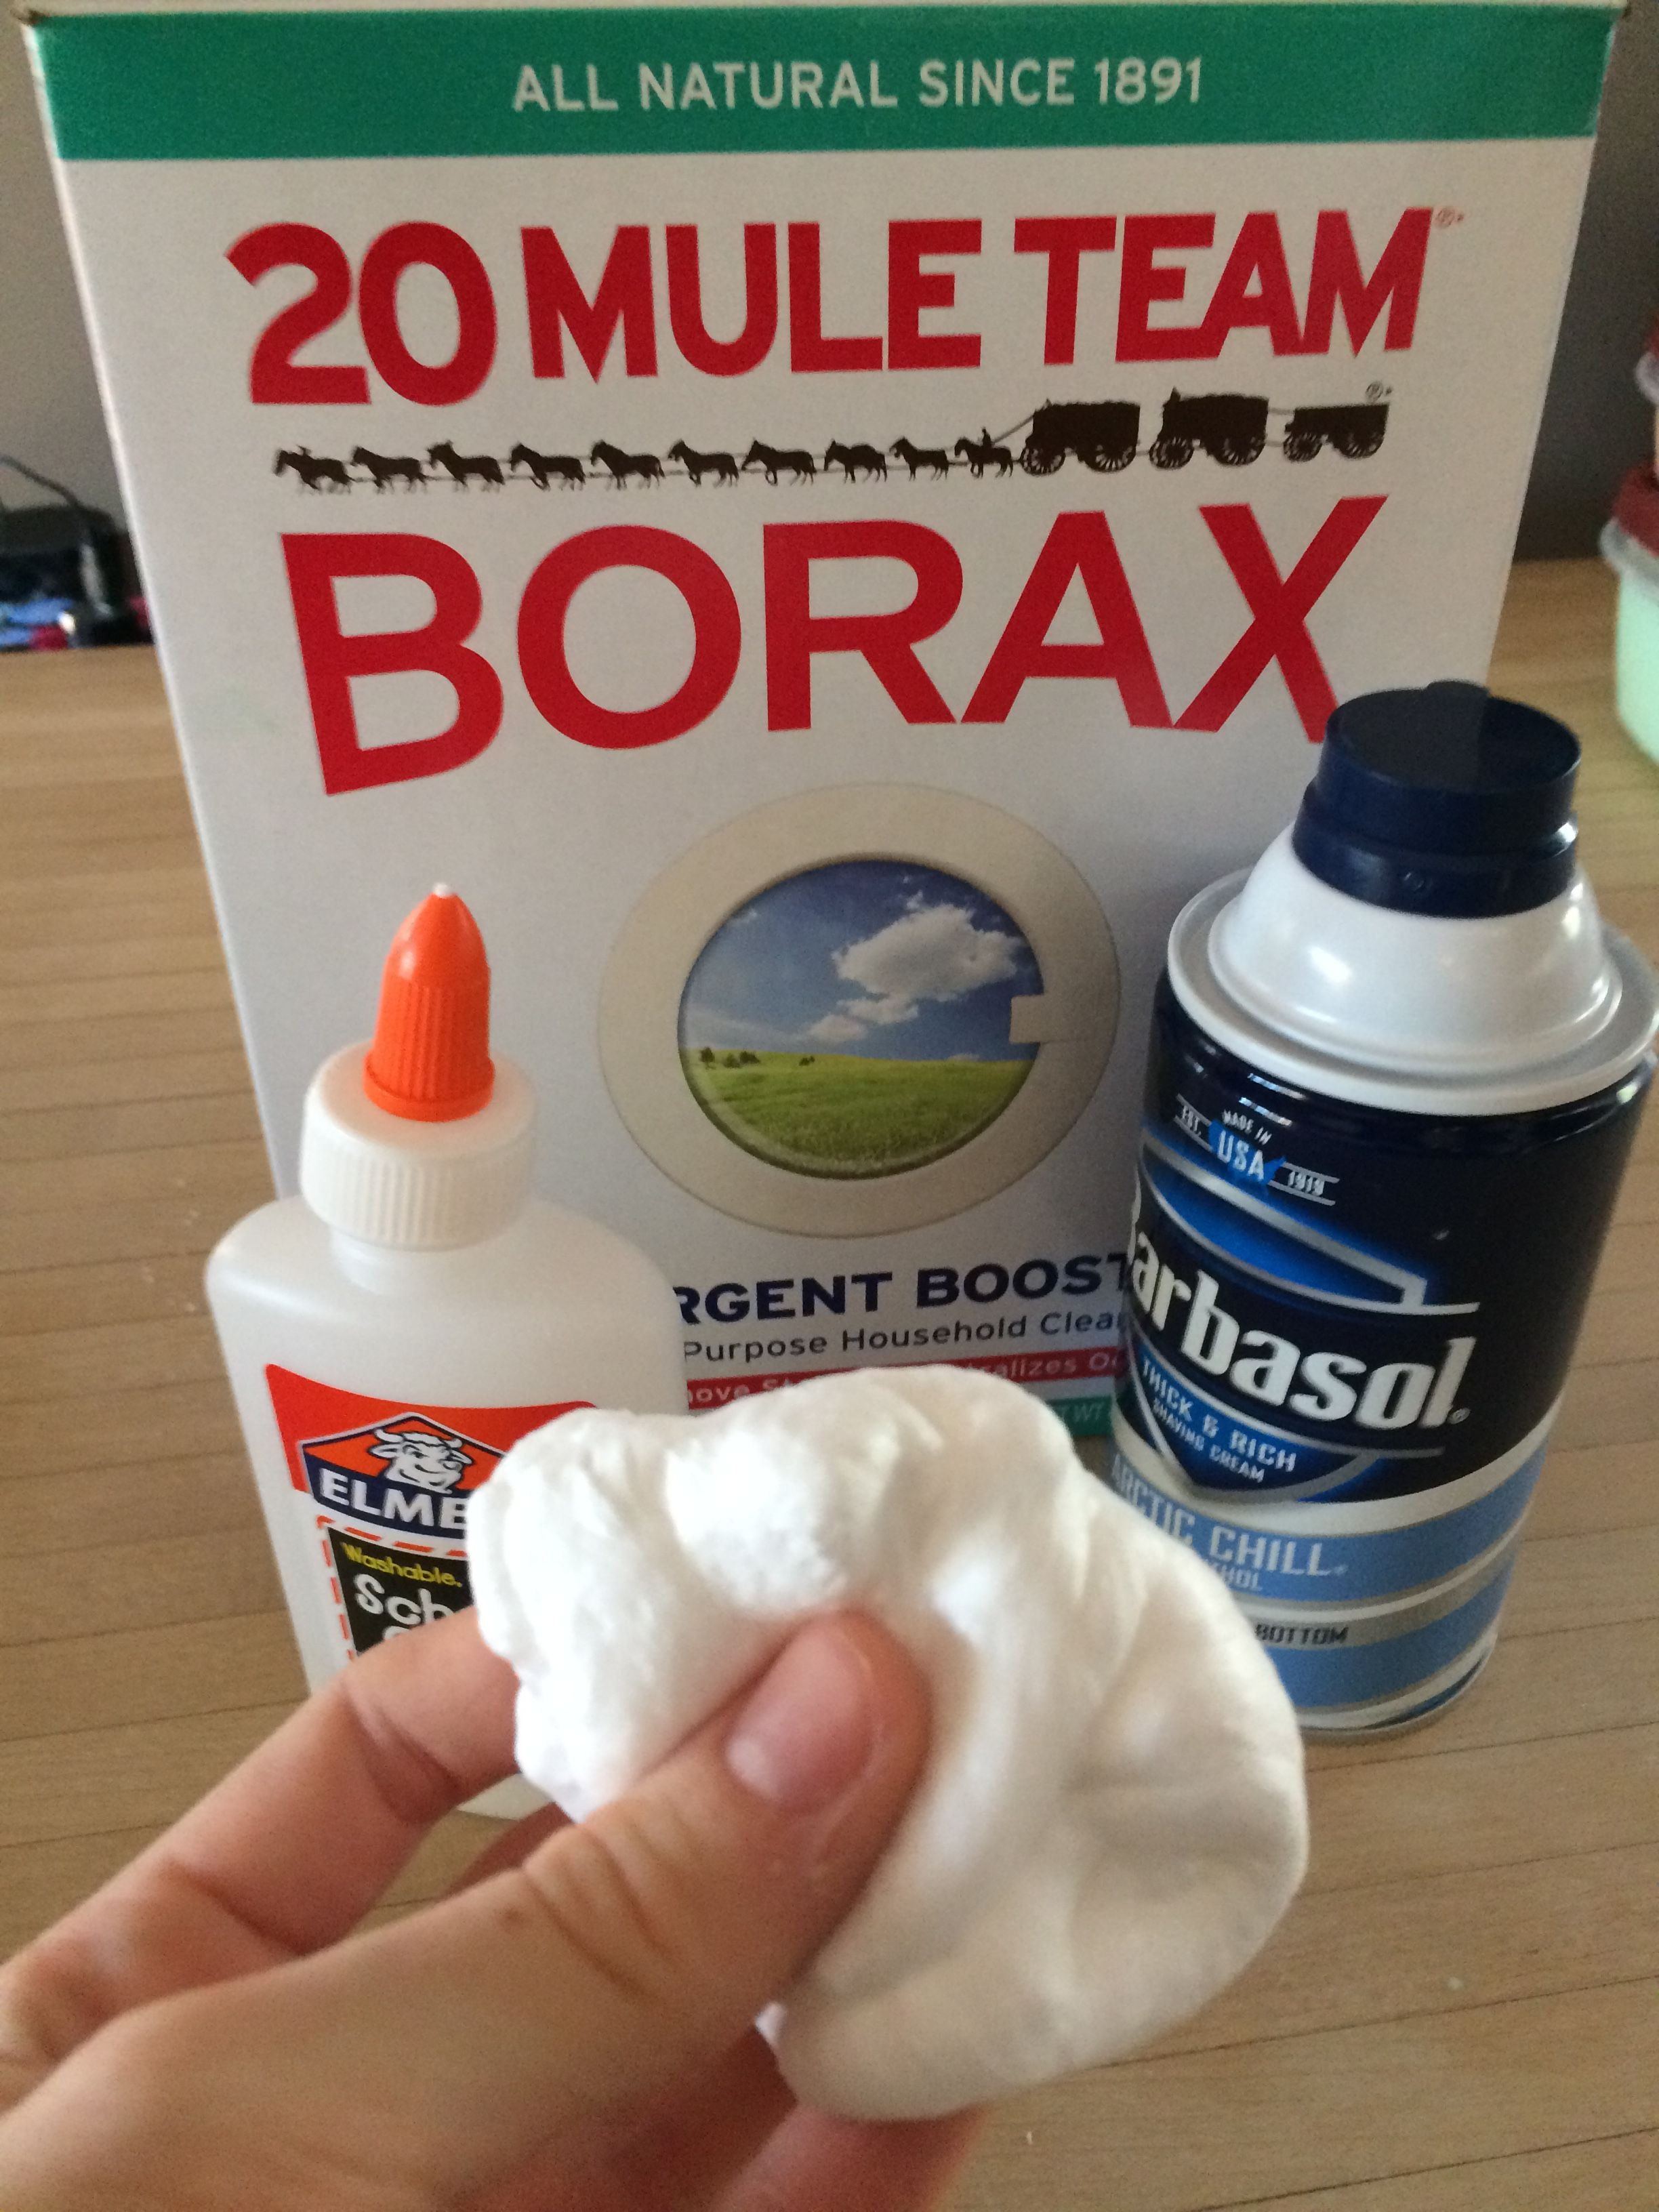 I was just experimenting and found a super easy way to make fluffy i was just experimenting and found a super easy way to make fluffy slime a little glue the amount in a bottle shaving cream pinch of borax ccuart Choice Image